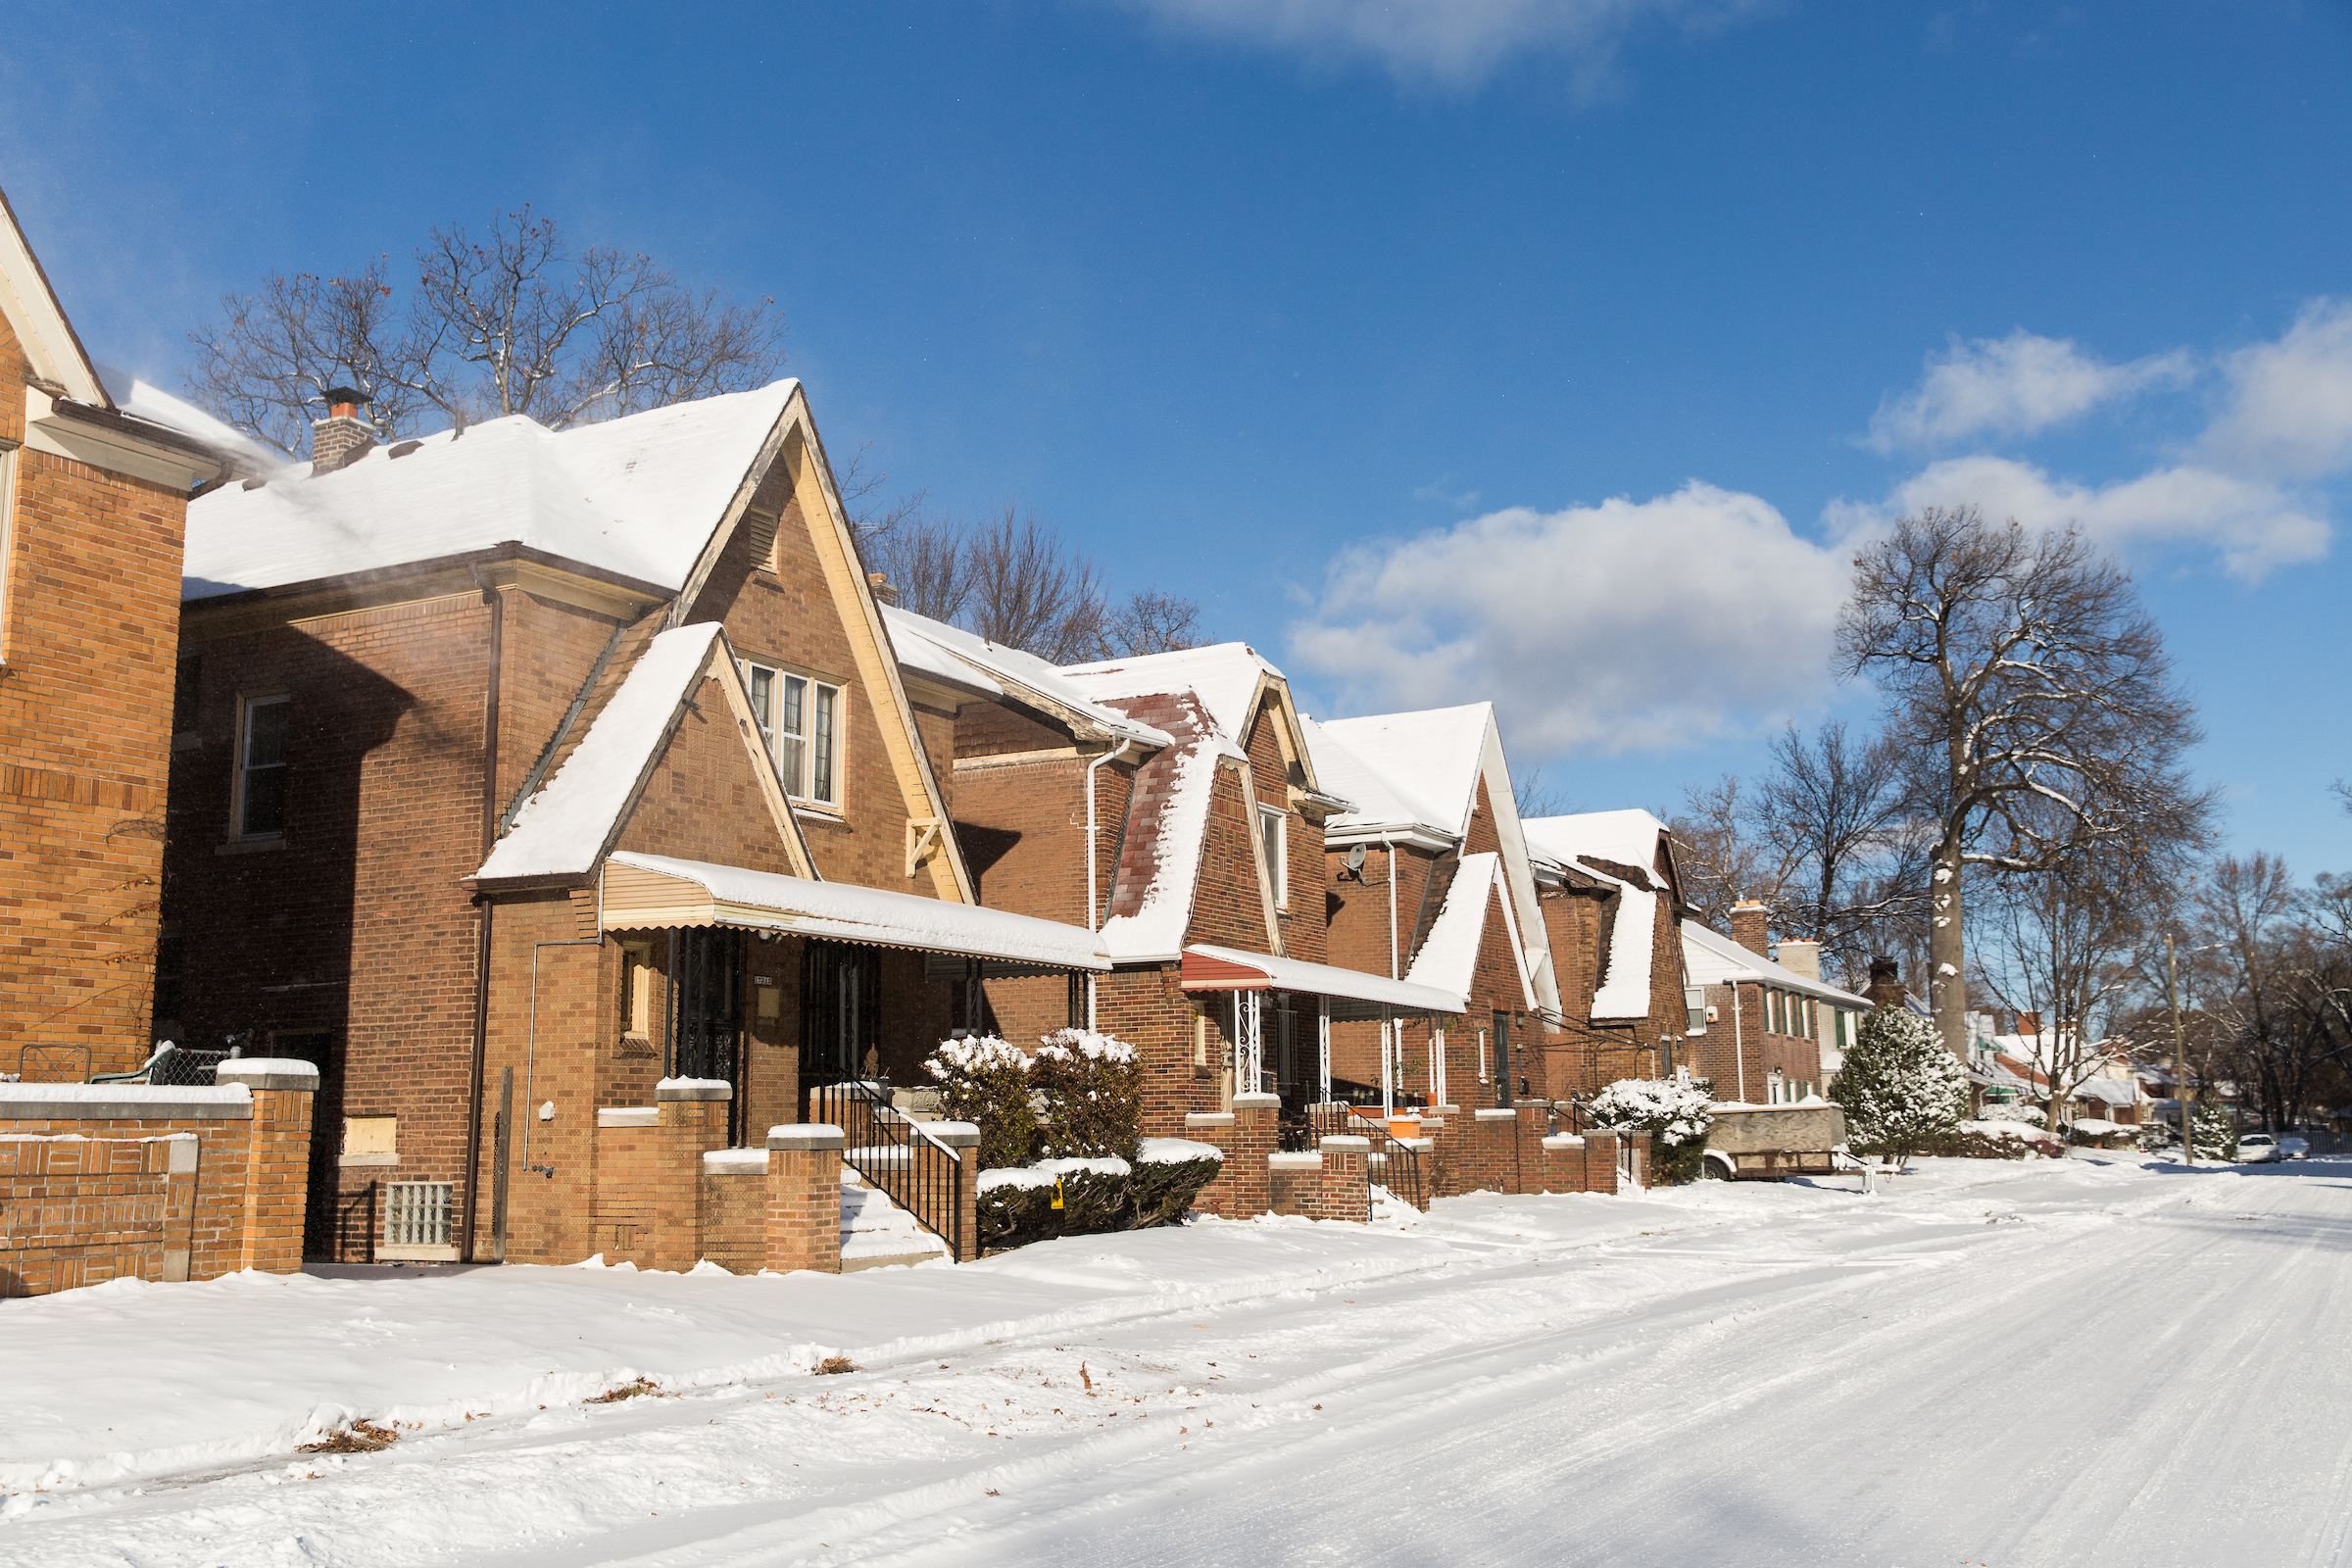 A row of snow-covered brick homes.